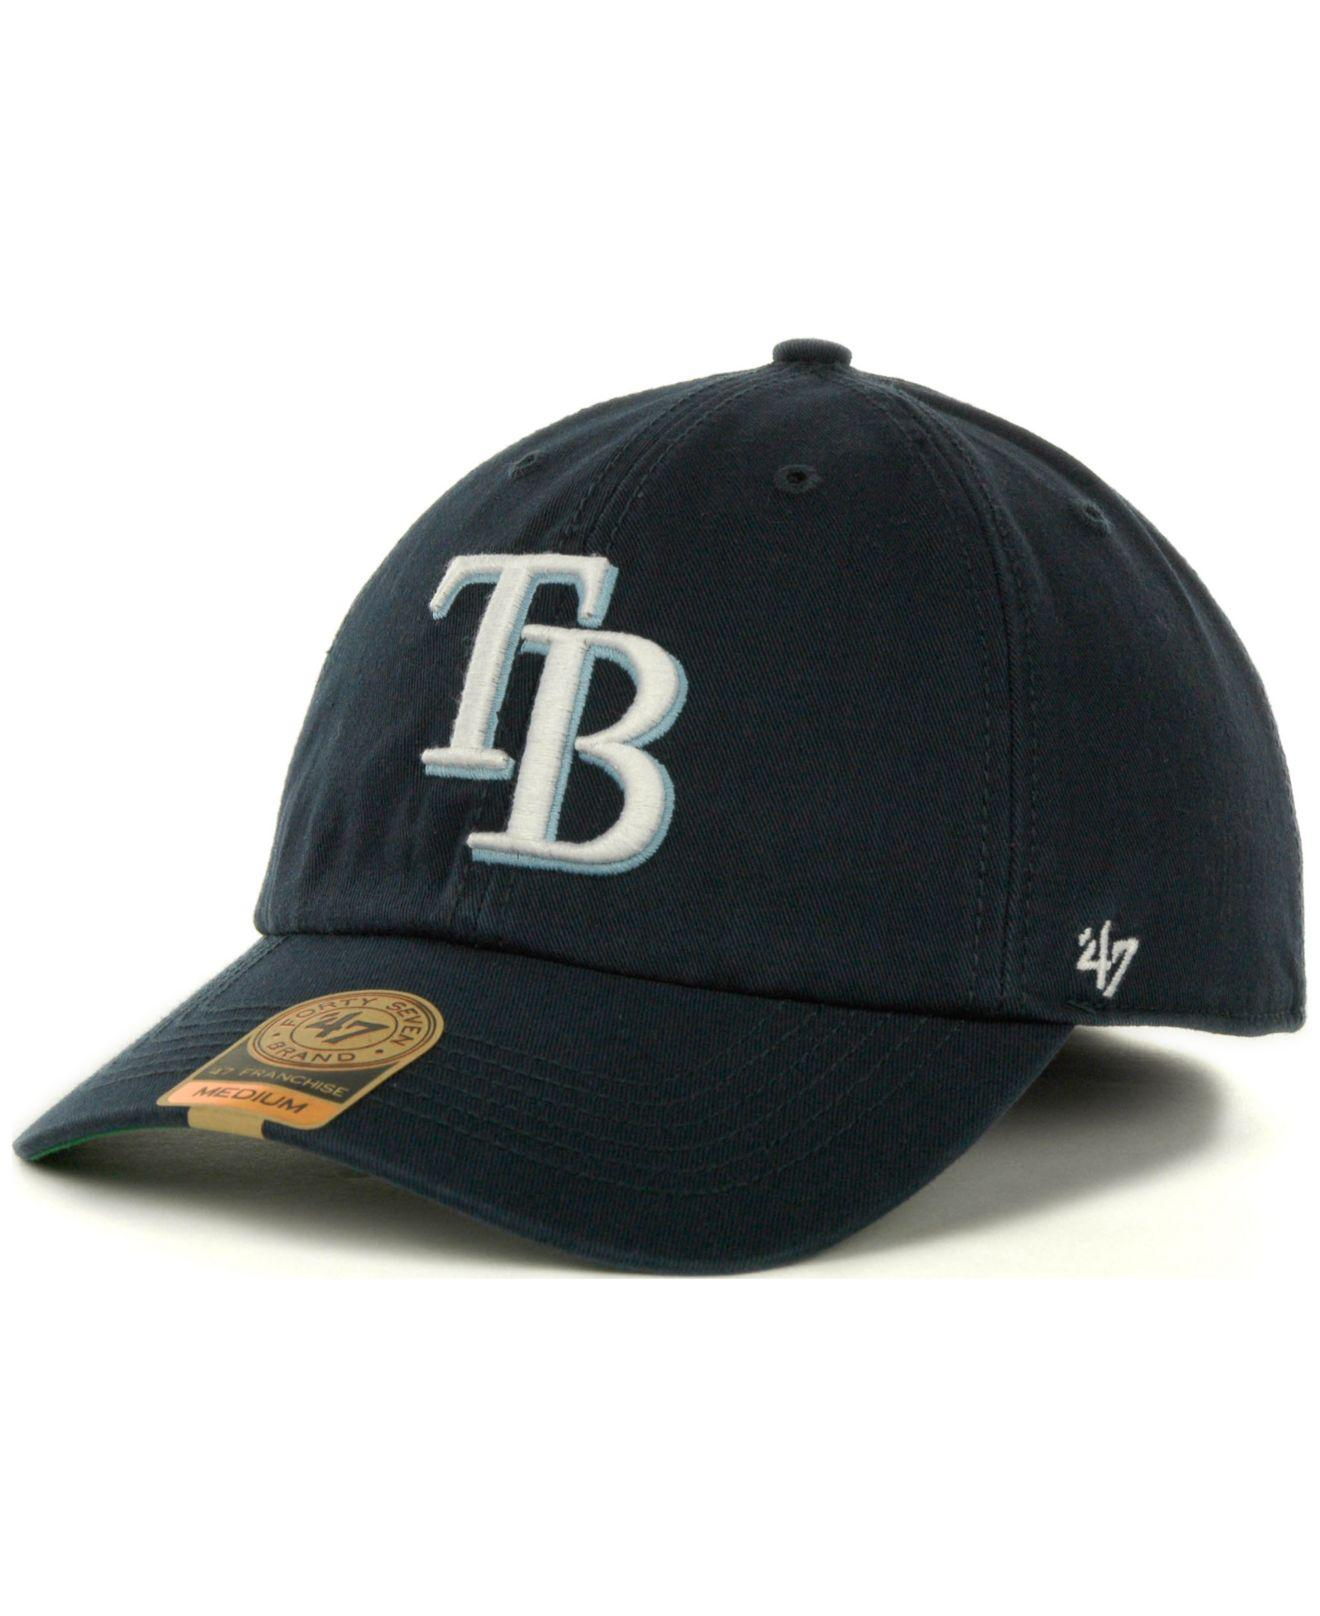 444872cbc10 Lyst - 47 Brand Tampa Bay Rays Franchise Cap in Blue for Men